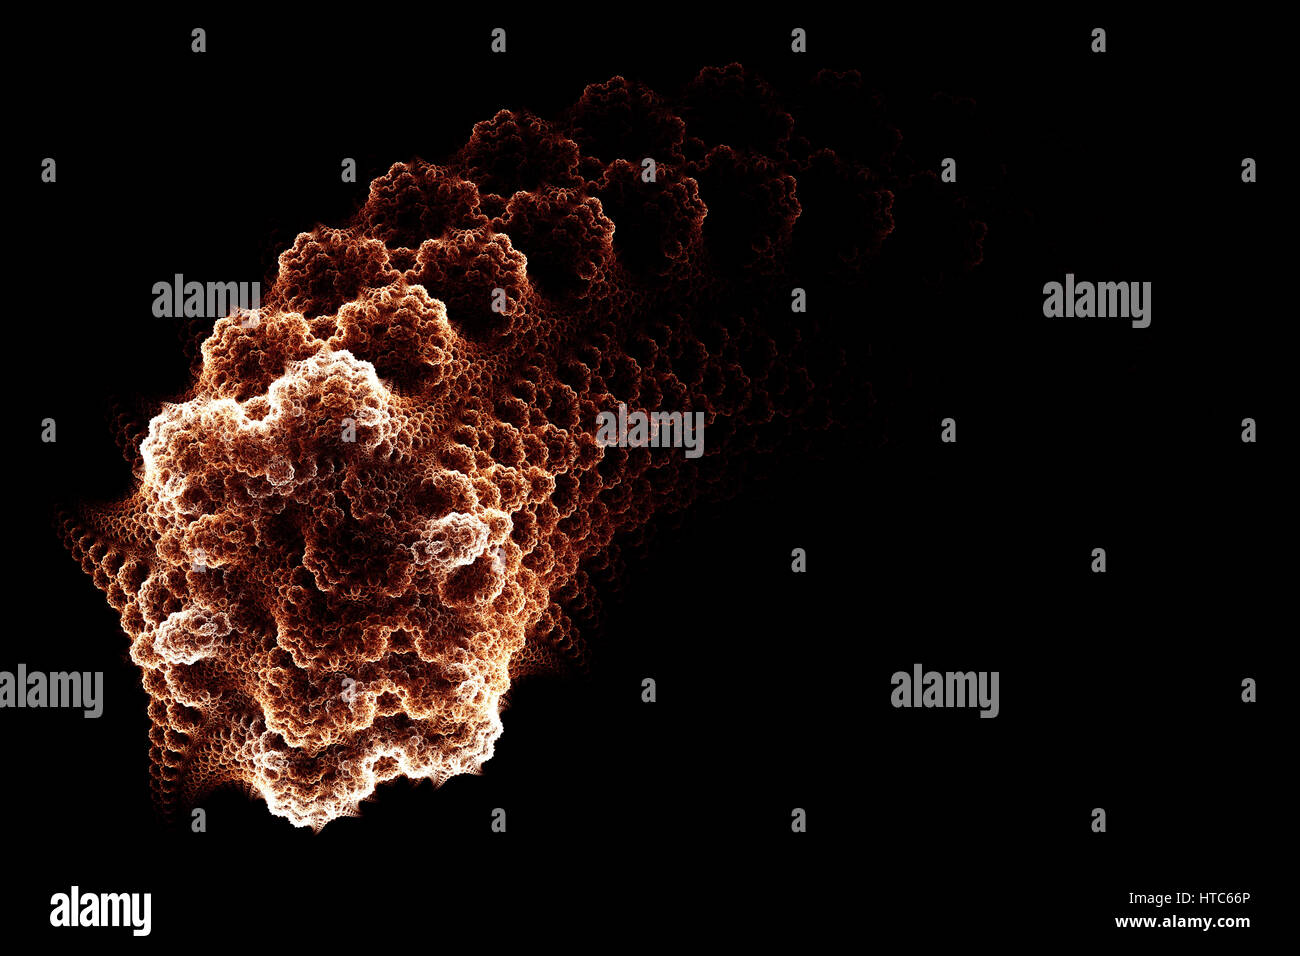 Red germ. Micro organism. Abstract background. Isolated on black background. - Stock Image